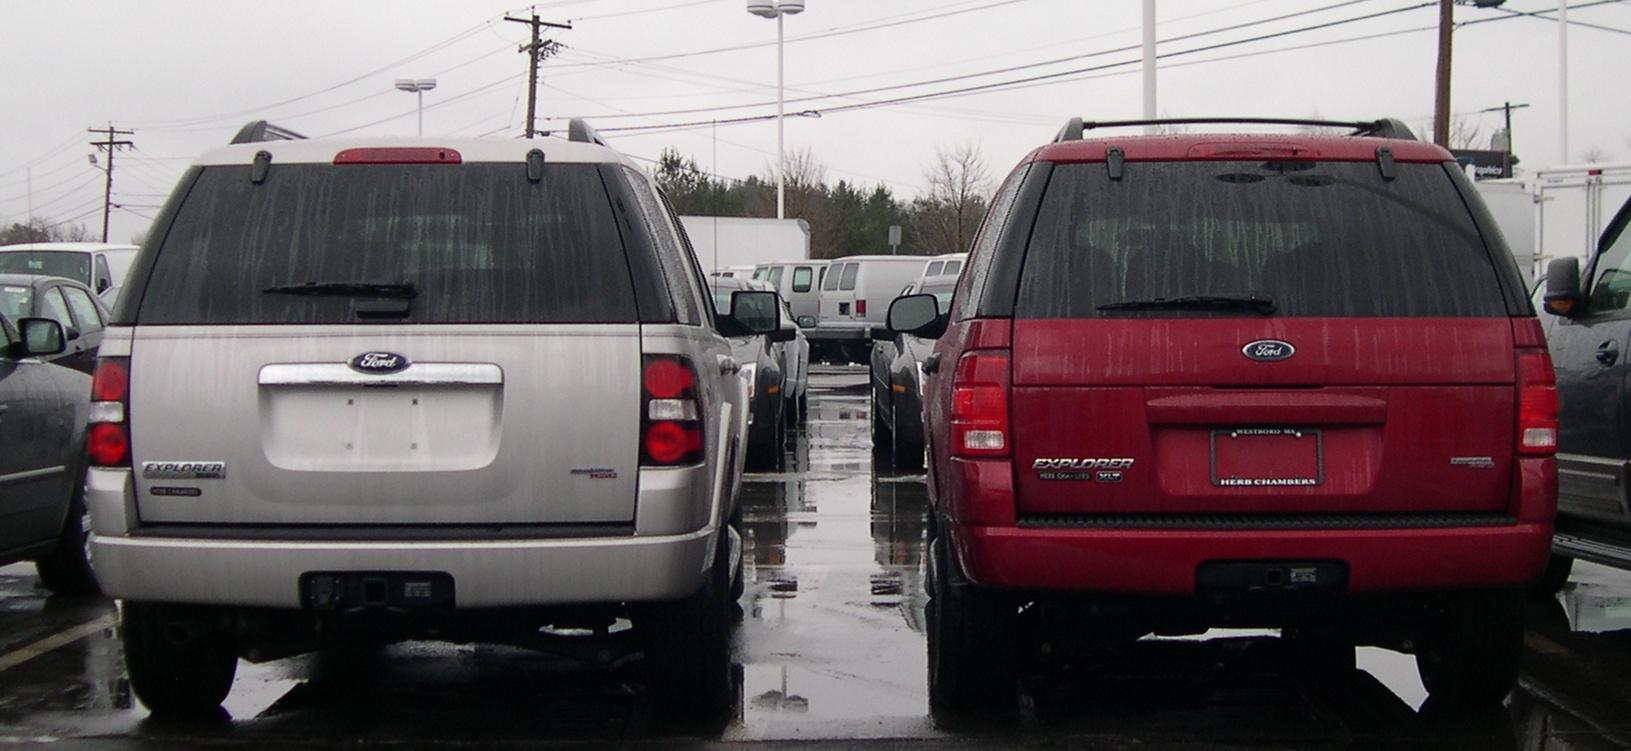 File:2005 and 2006 Ford Explorer rear.jpg